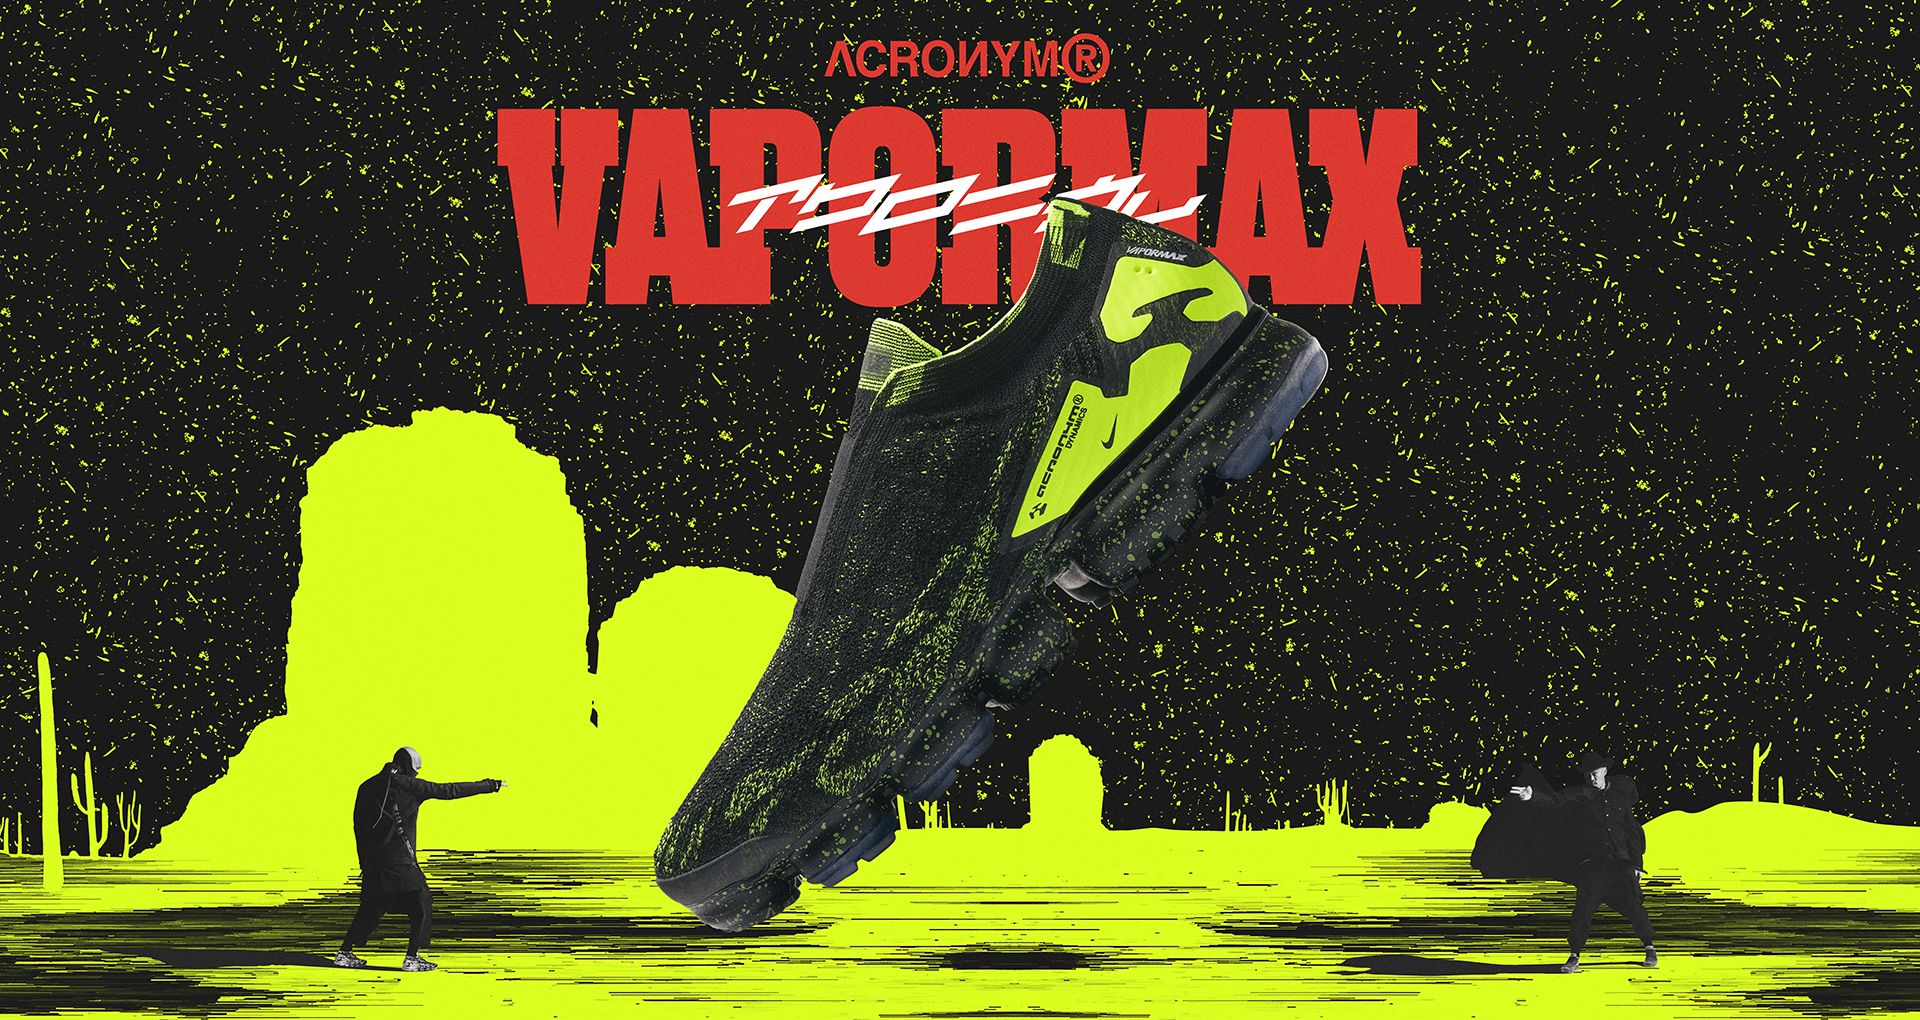 reputable site ca60f b09c2 Nike Air Vapormax Moc 2 Acronym Black  Volt Release Date. Nike⁠+ SNKRS